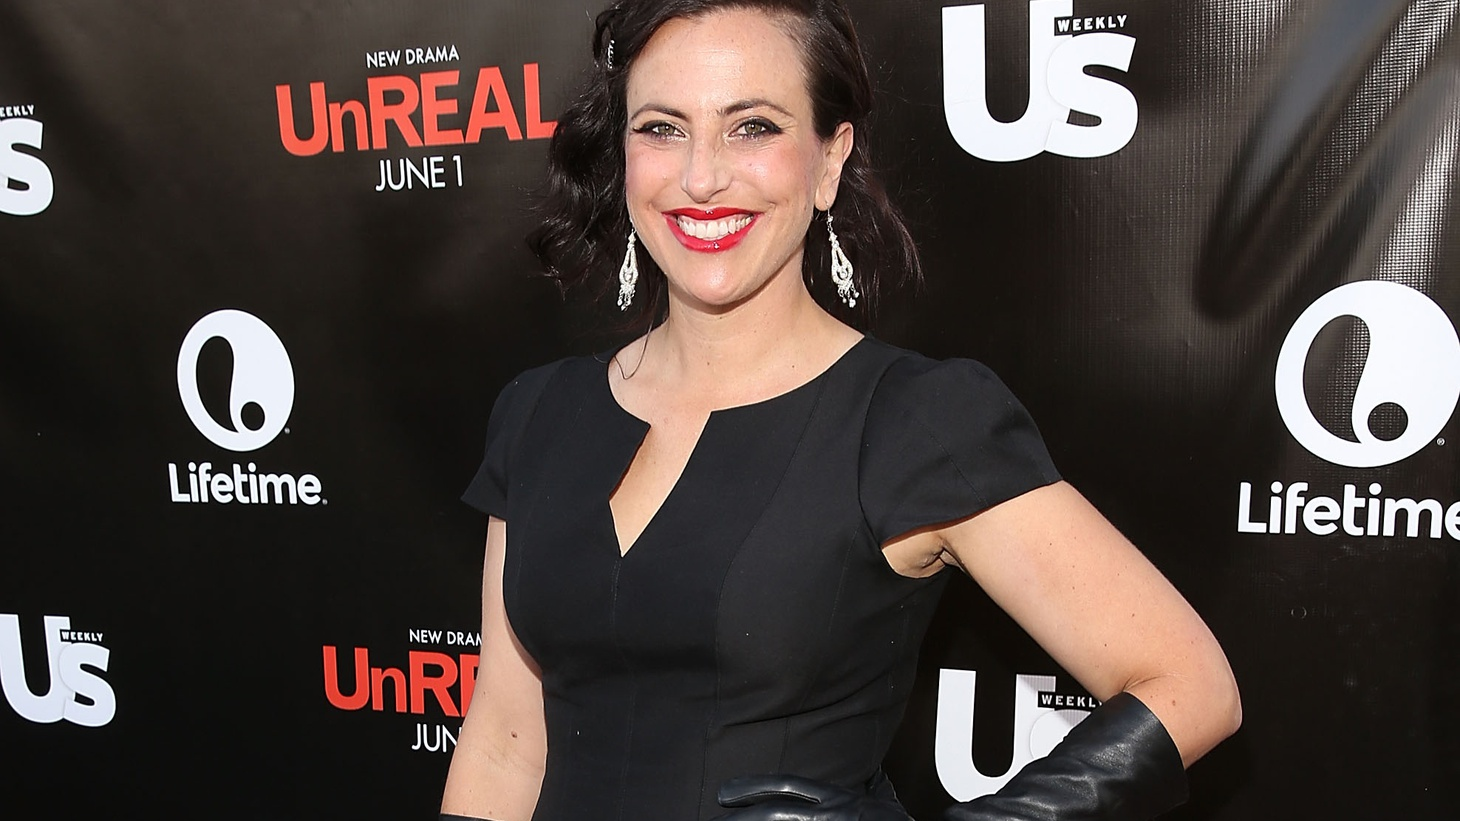 The new dramedy UnREAL is a major departure from the typical Lifetime fare. The series co-creator Sarah Gertrude Shapiro tells us how her past experience working on The Bachelor led to the creation of a show all about the behind-the-scenes machinations of a reality TV producer.